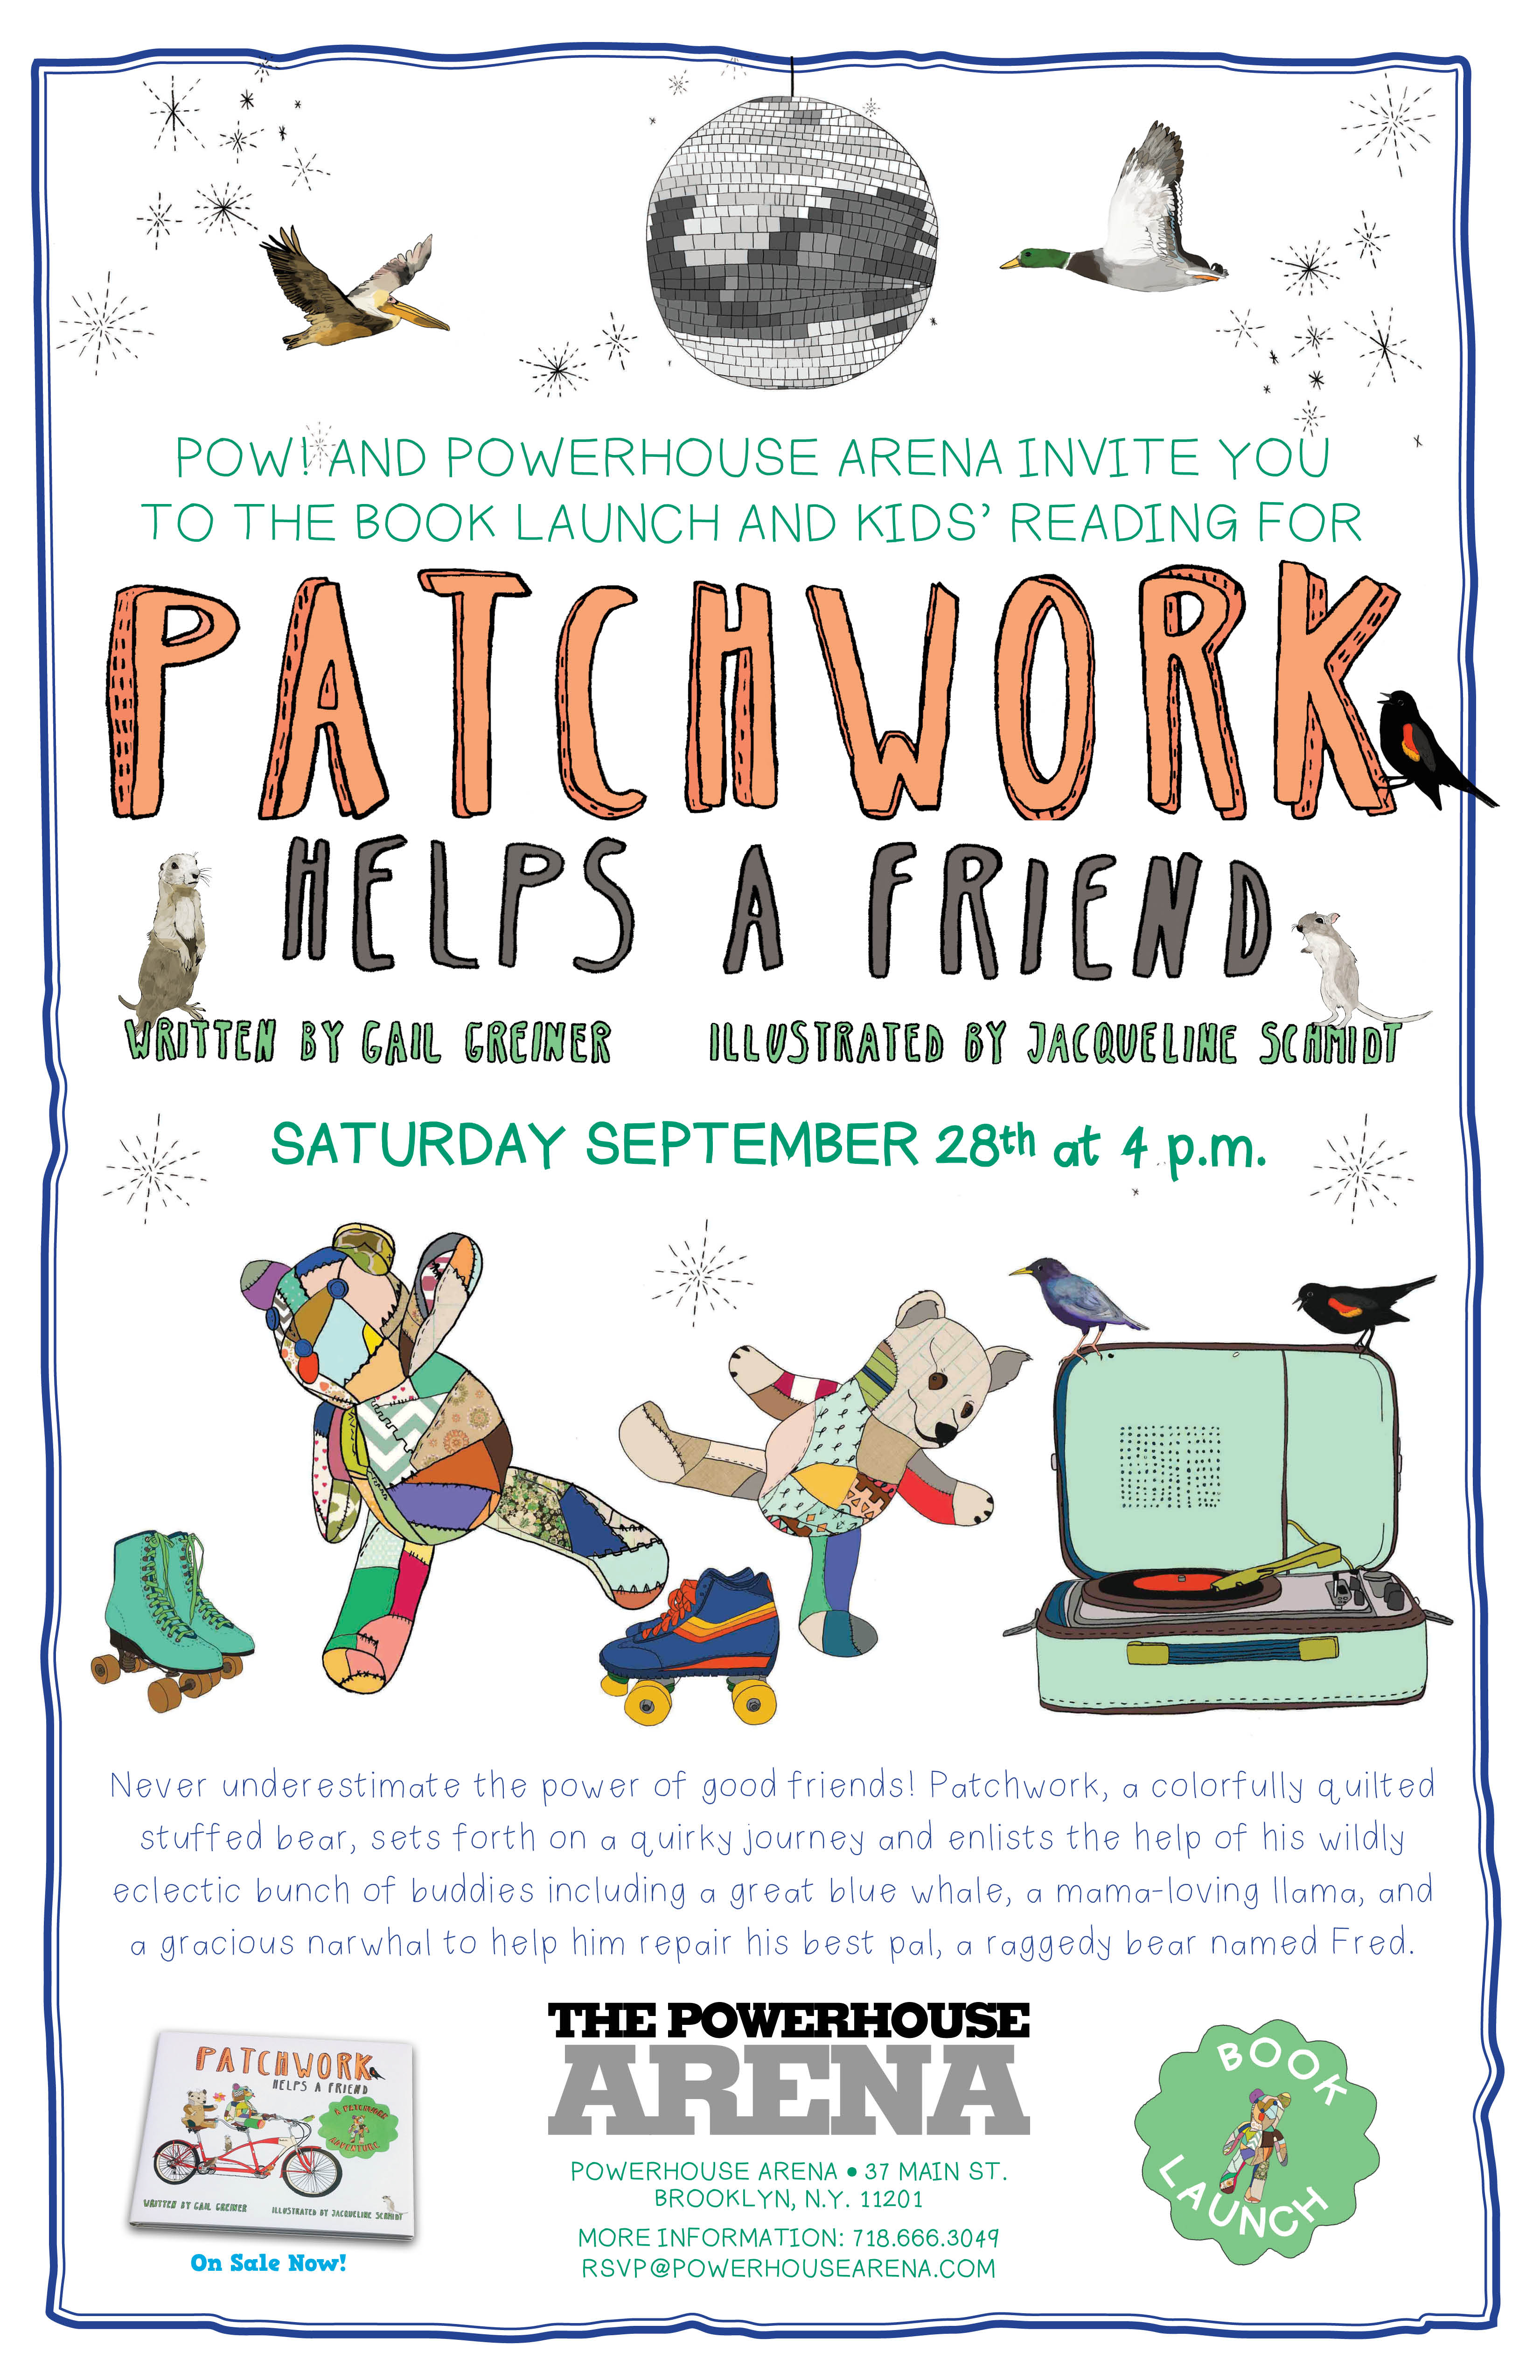 Book Launch: Patchwork Helps a Friend illustrated by Jacqueline Schmidt